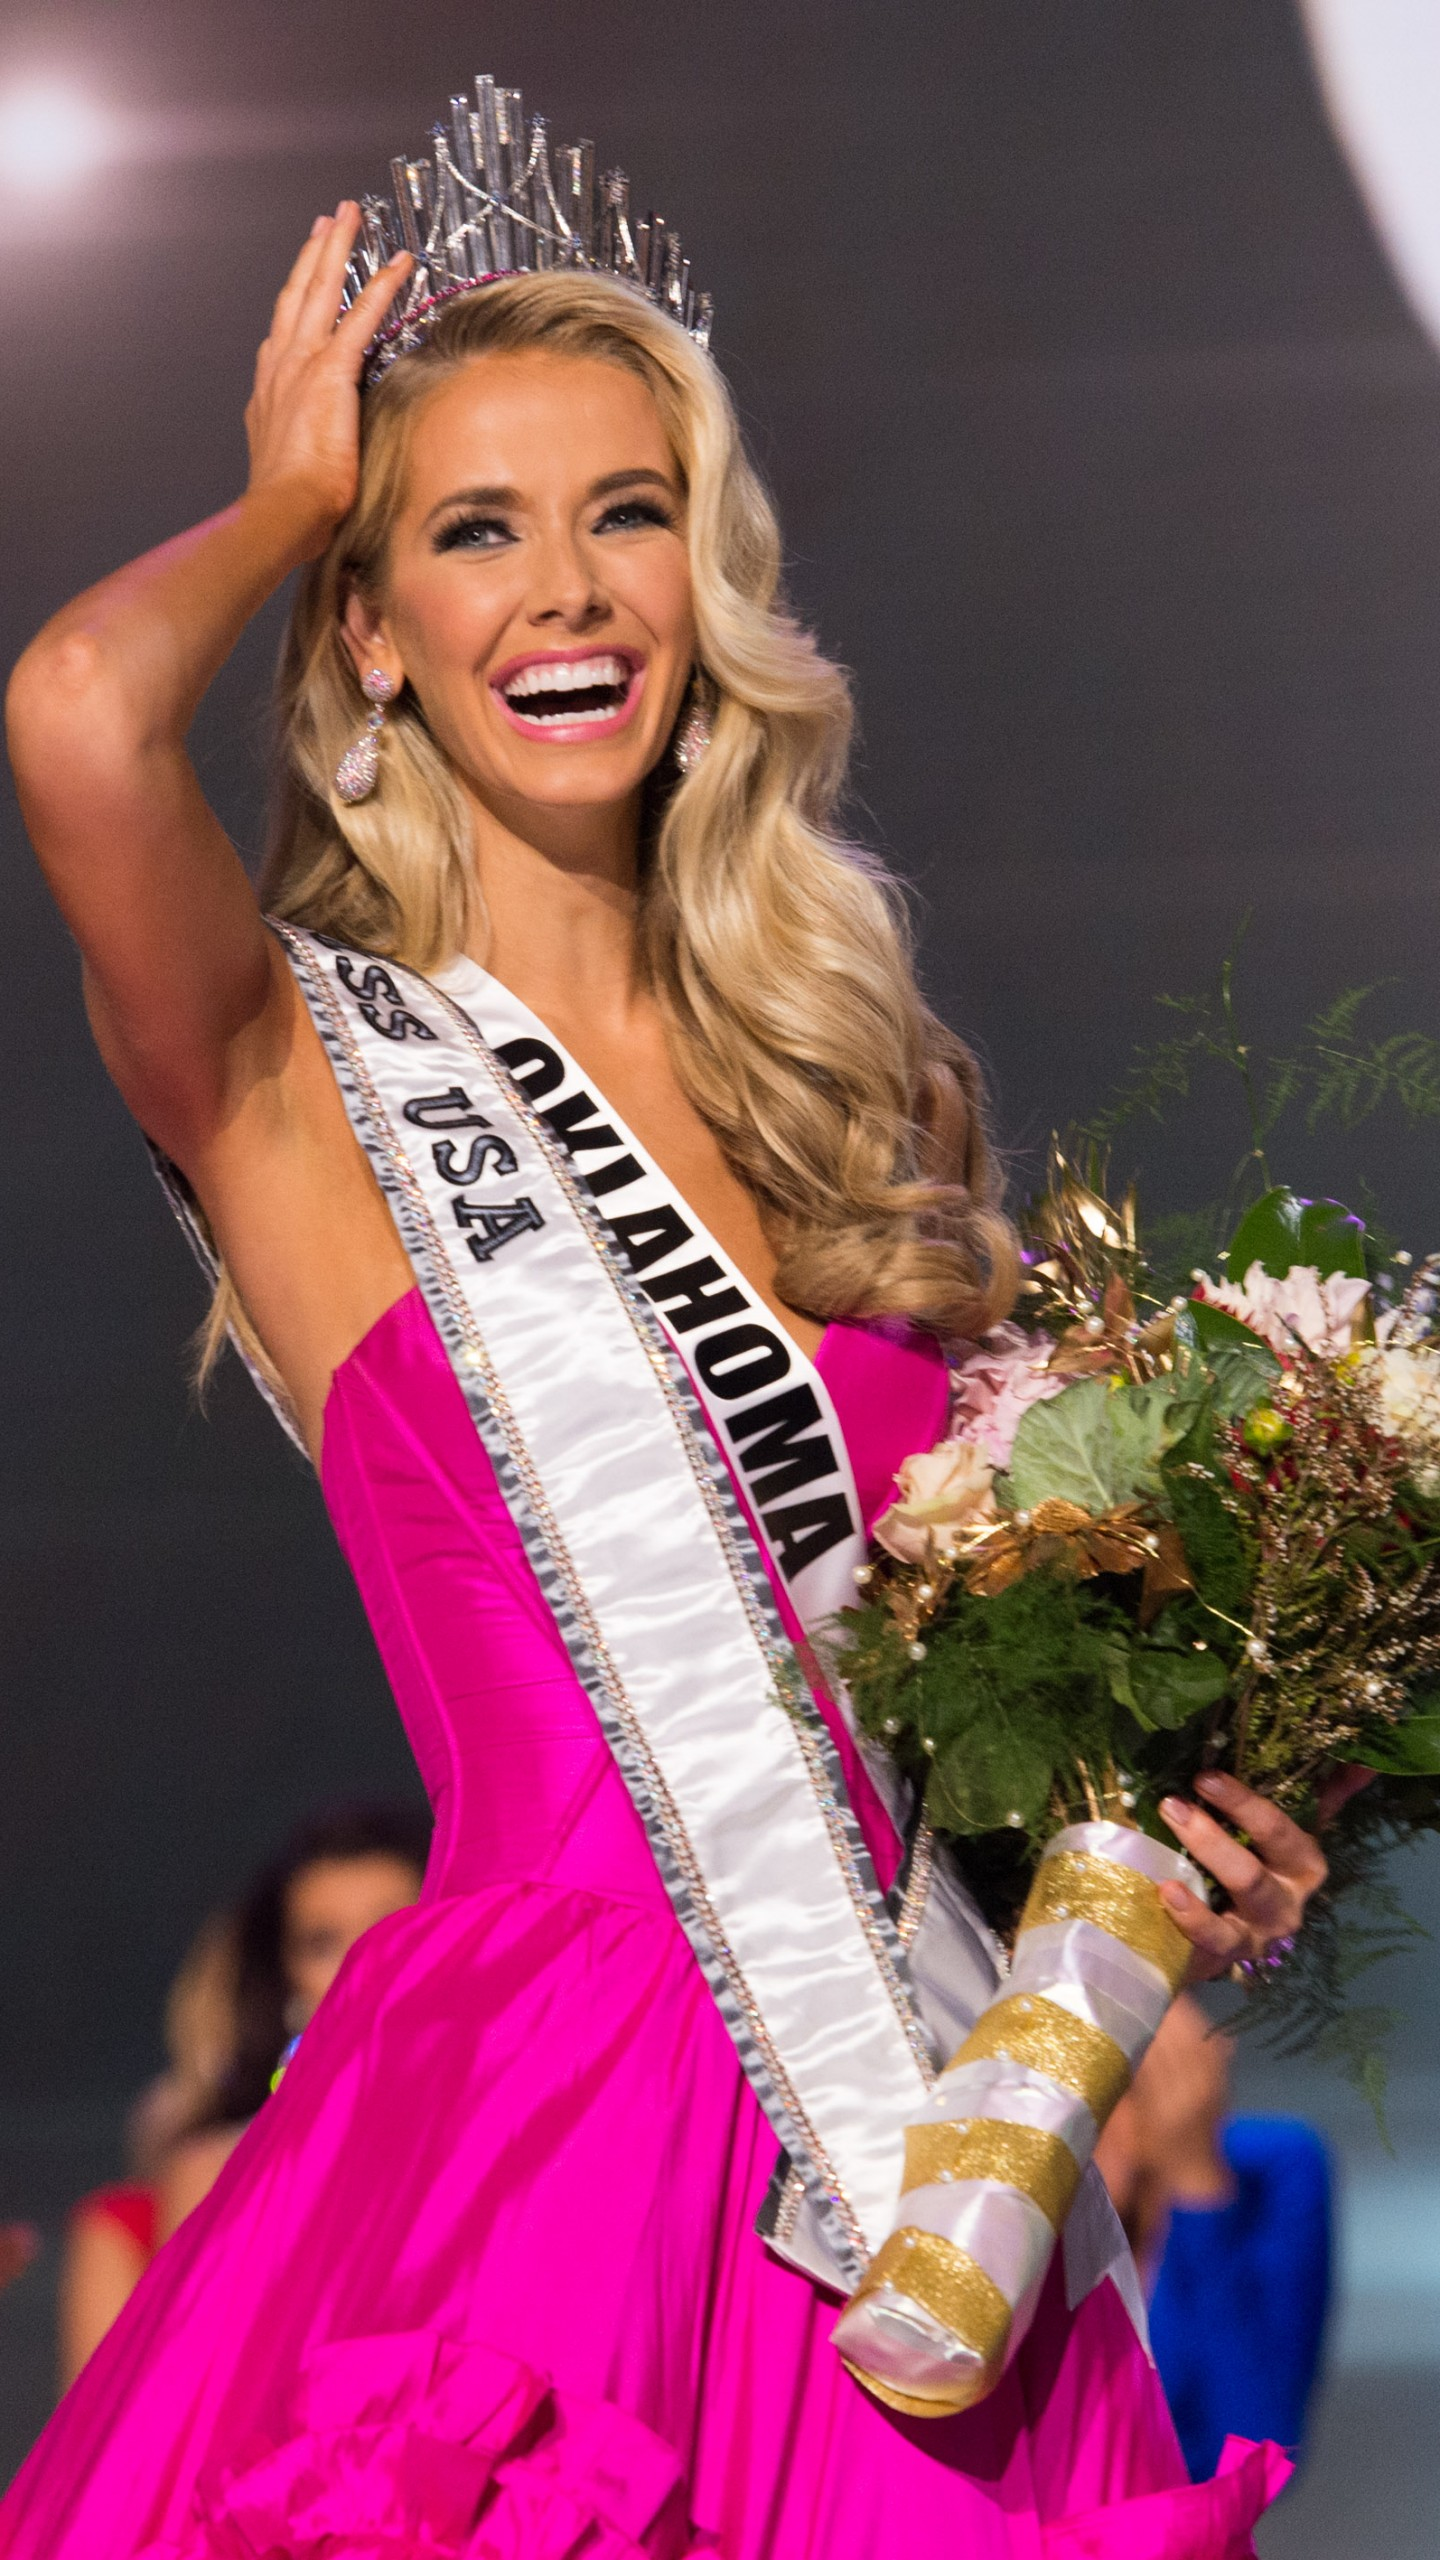 MISS USA 2015 PAGEANT FULL SHOW HD - YouTube